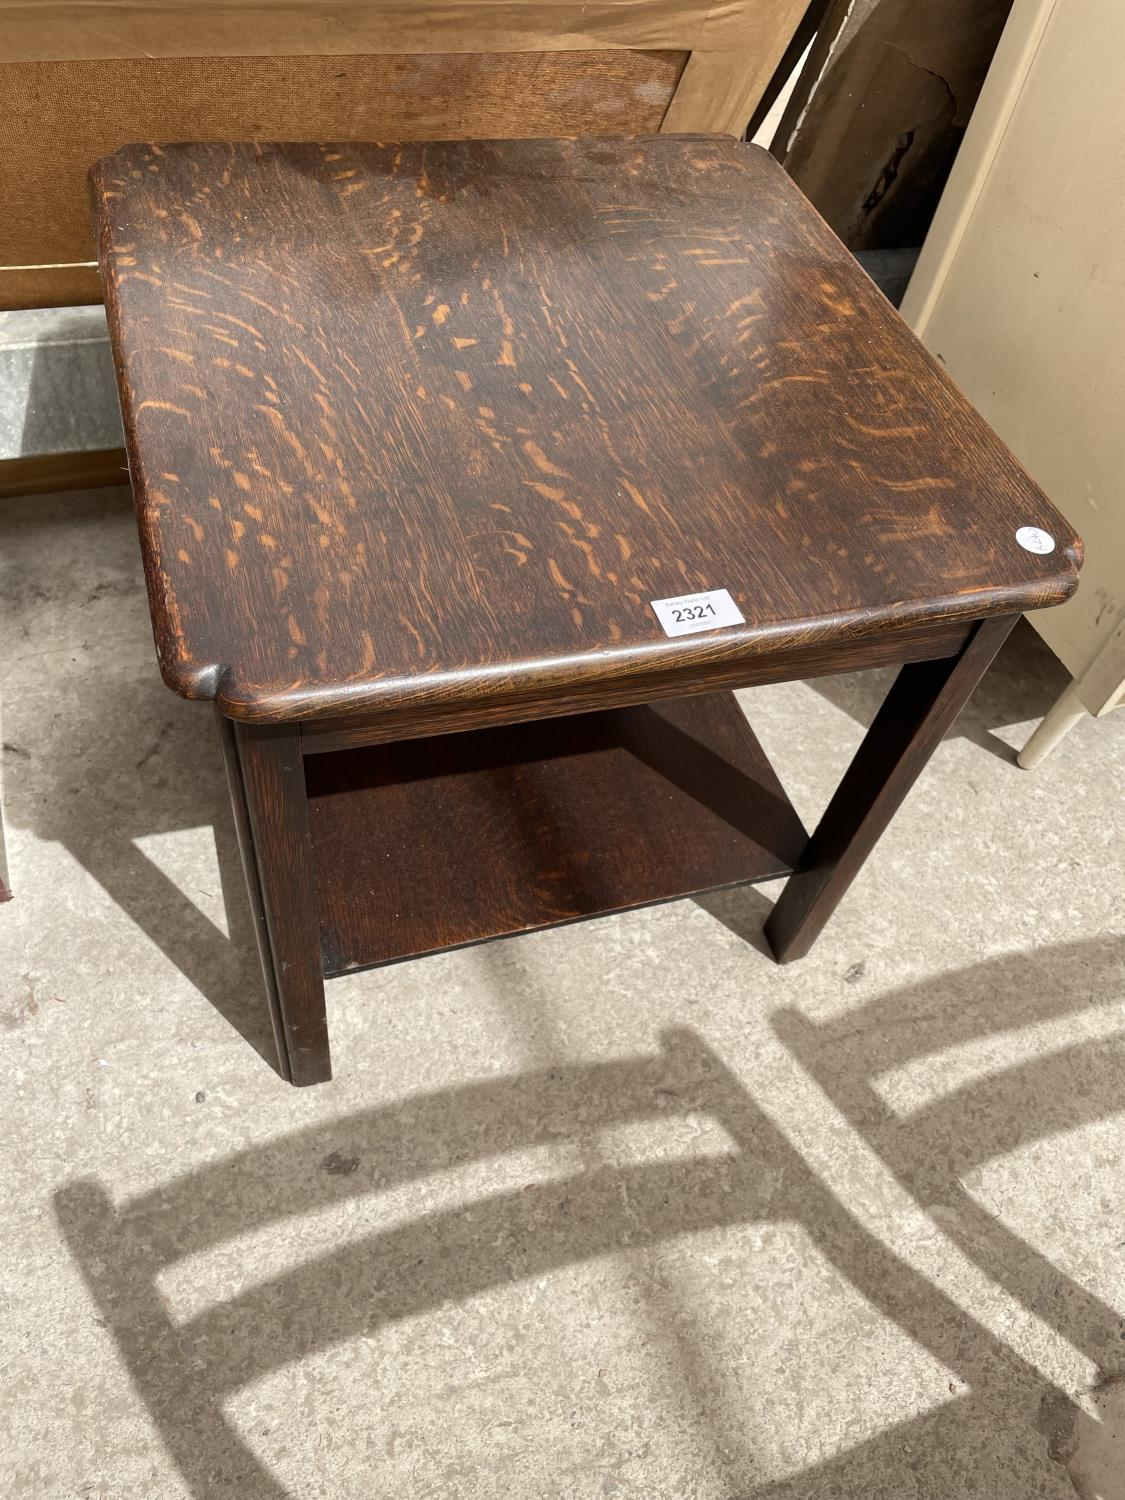 AN OAK OCCASIONAL TABLE WITH LOWER SHELF